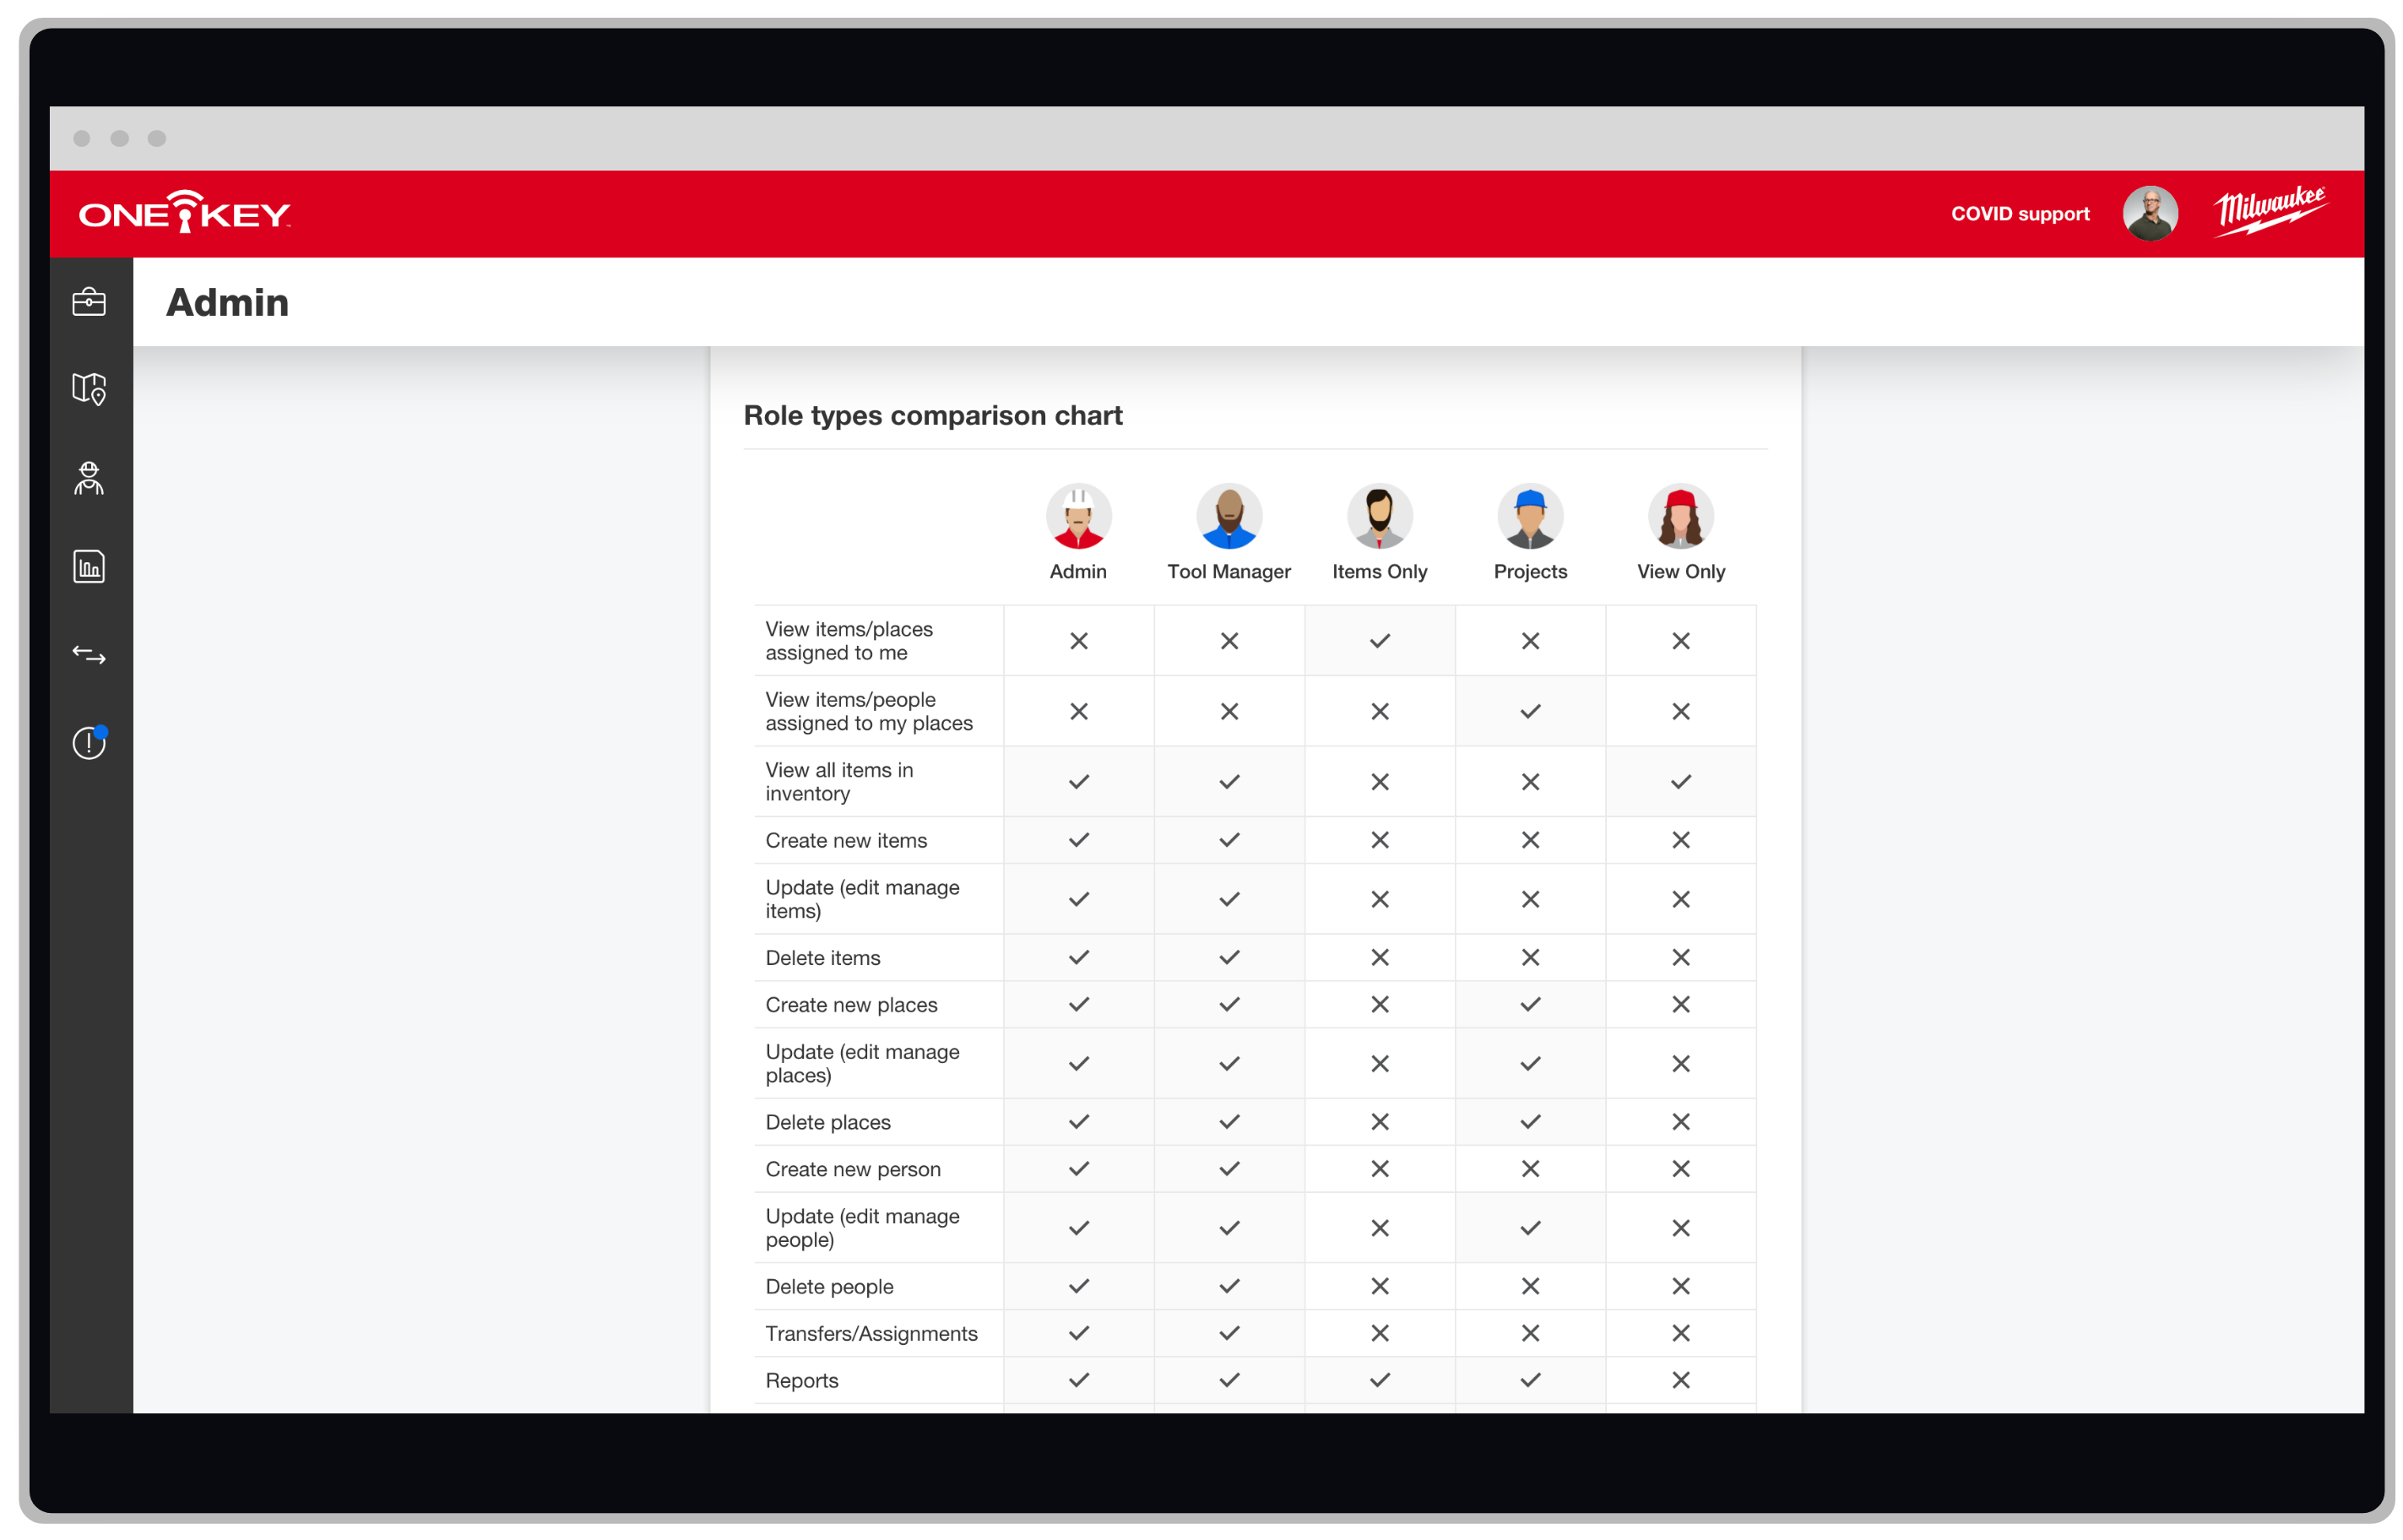 One-Key multi-user admin lets you assign roles to team members associated with specific permissions